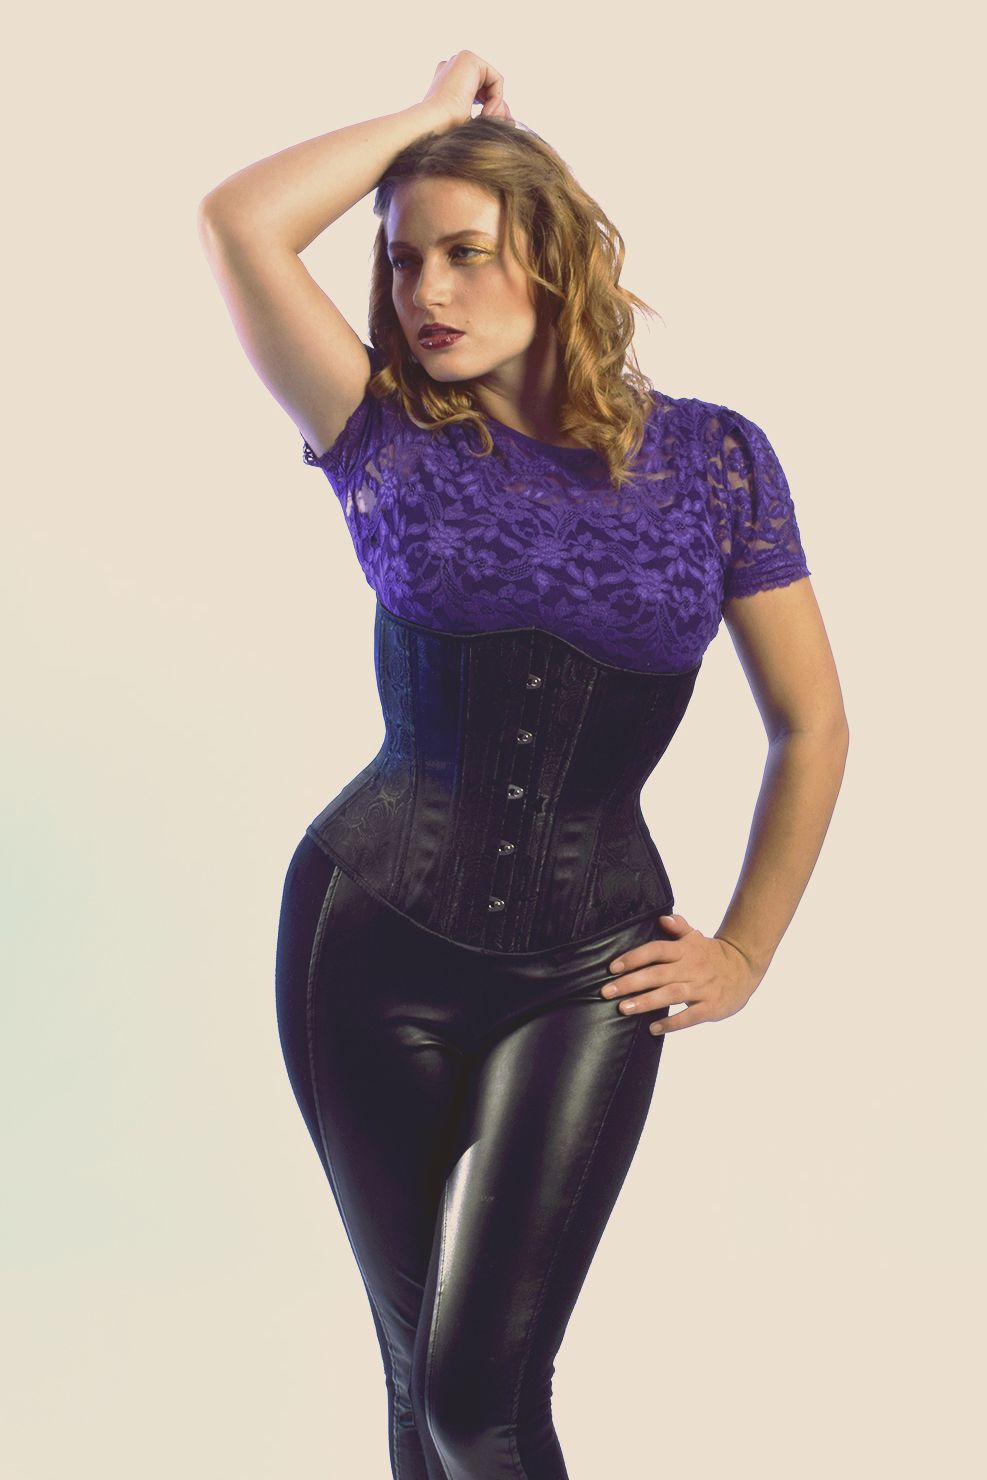 Waist training is the process of wearing a corset